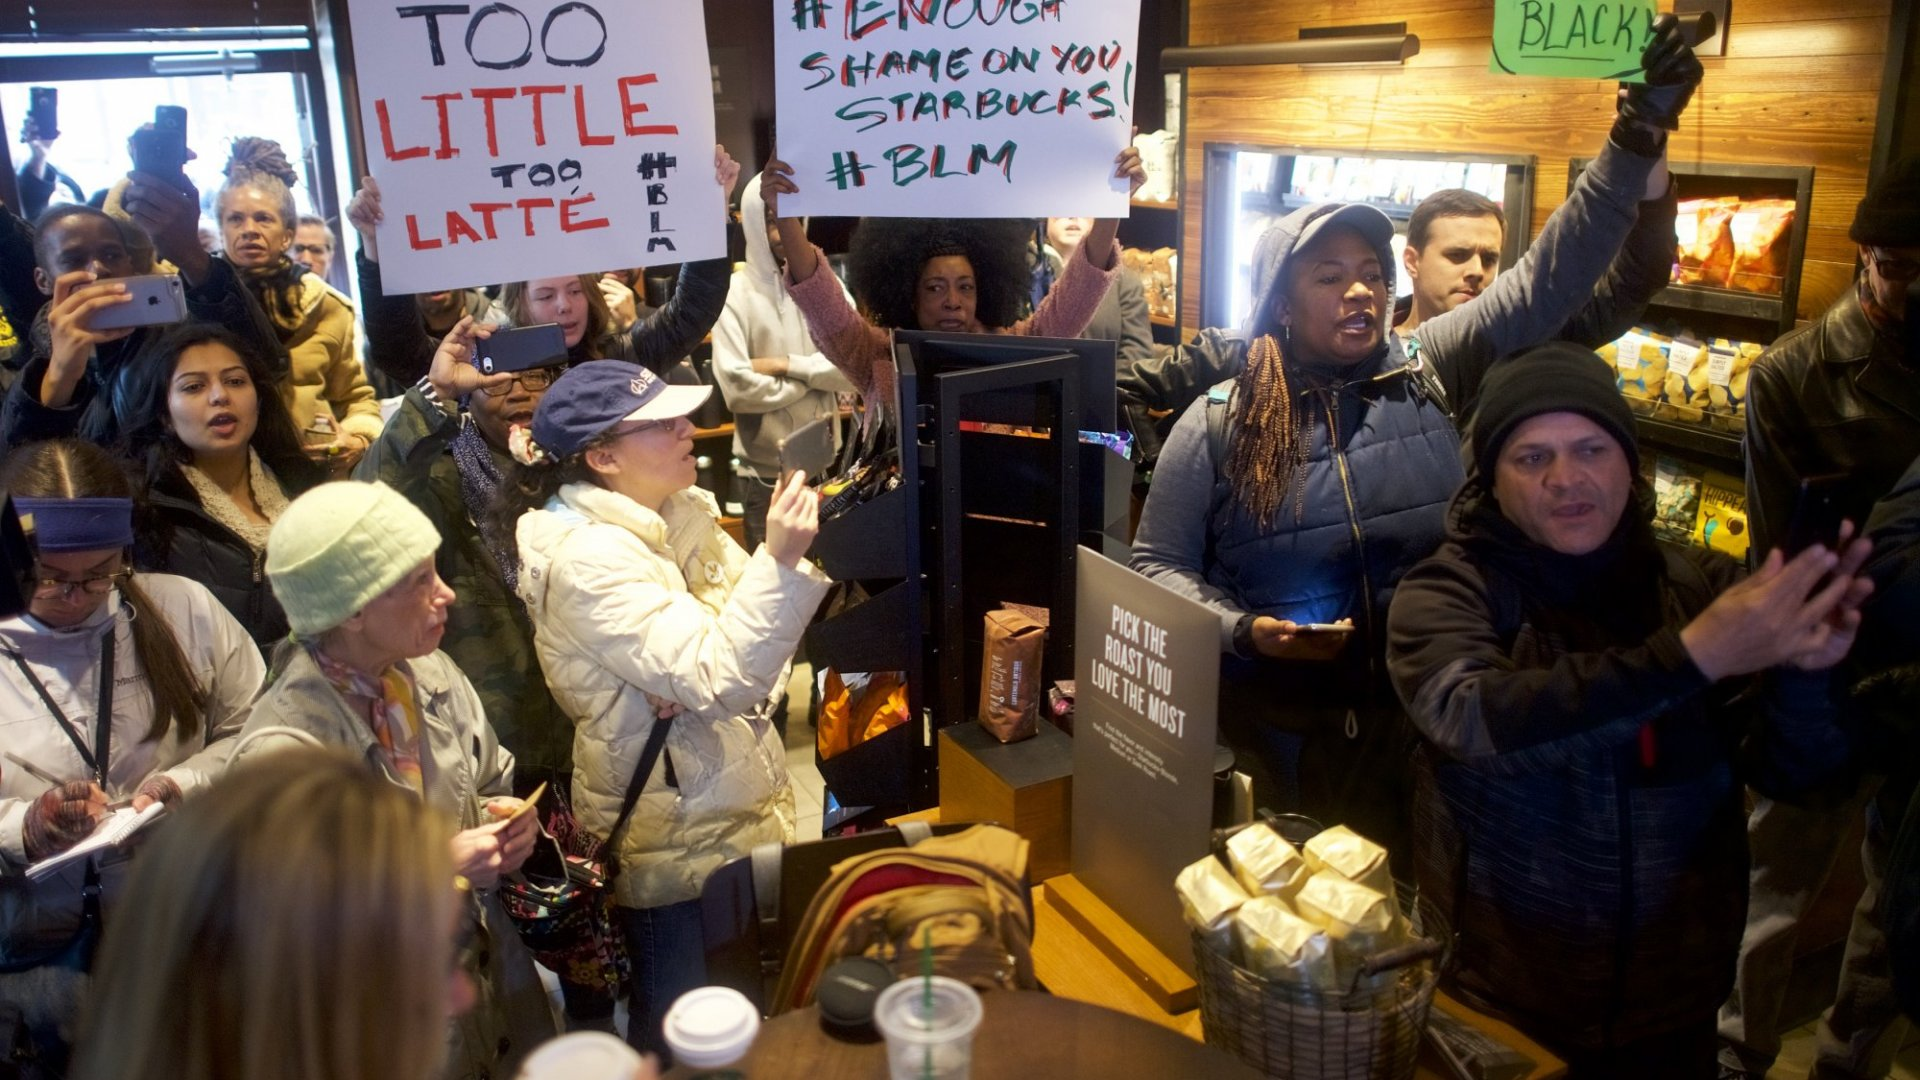 Another Starbucks Racism Incident: Apologies and Training Aren't Enough